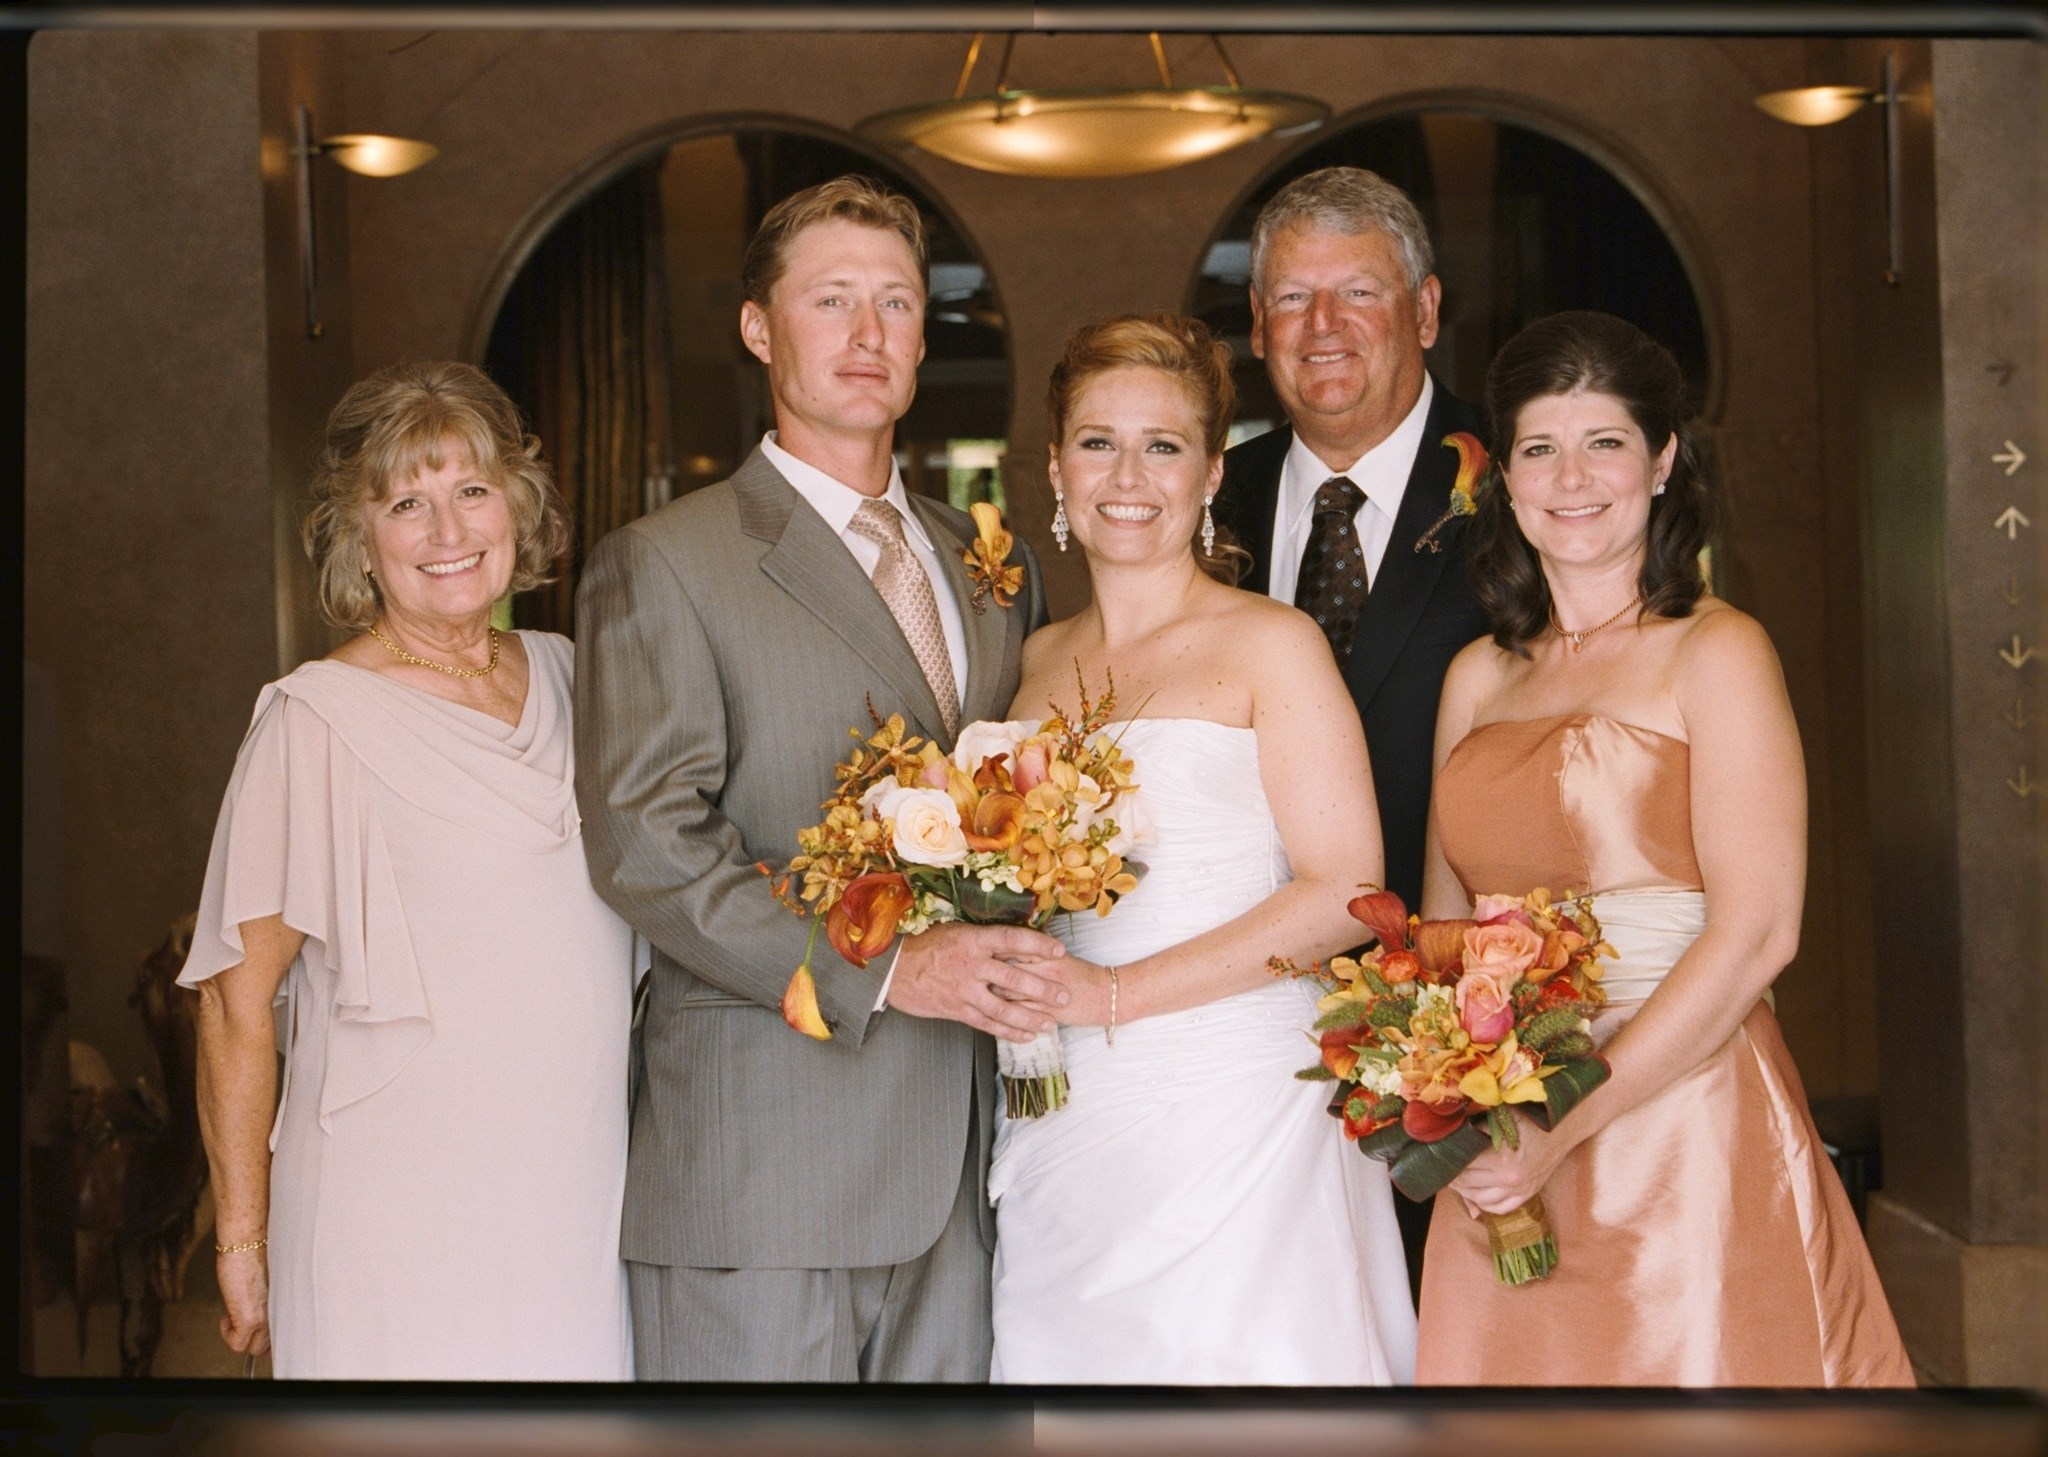 Tully Family at Ian and Caroline's wedding - the Tully clan can clean up nicely!